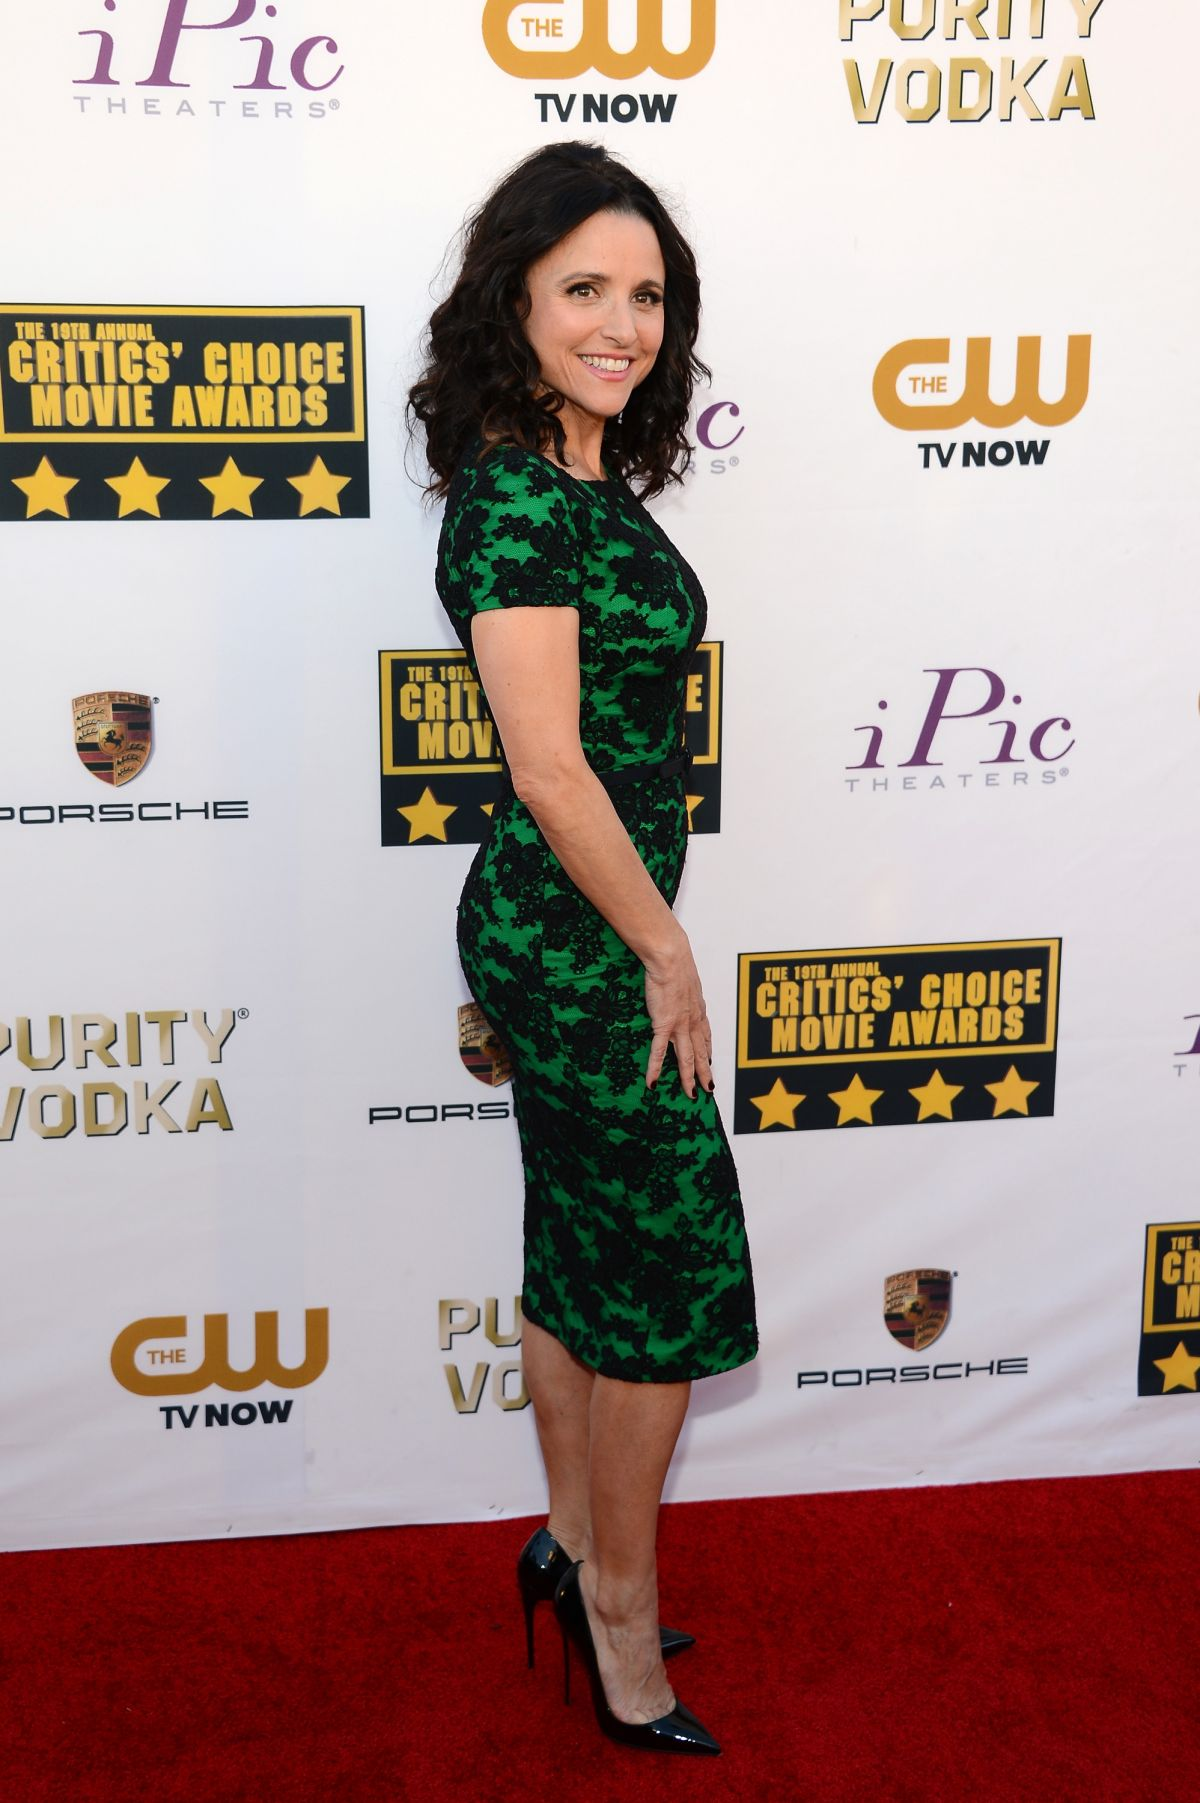 Julia Louis-Dreyfus Full hd wallpapers